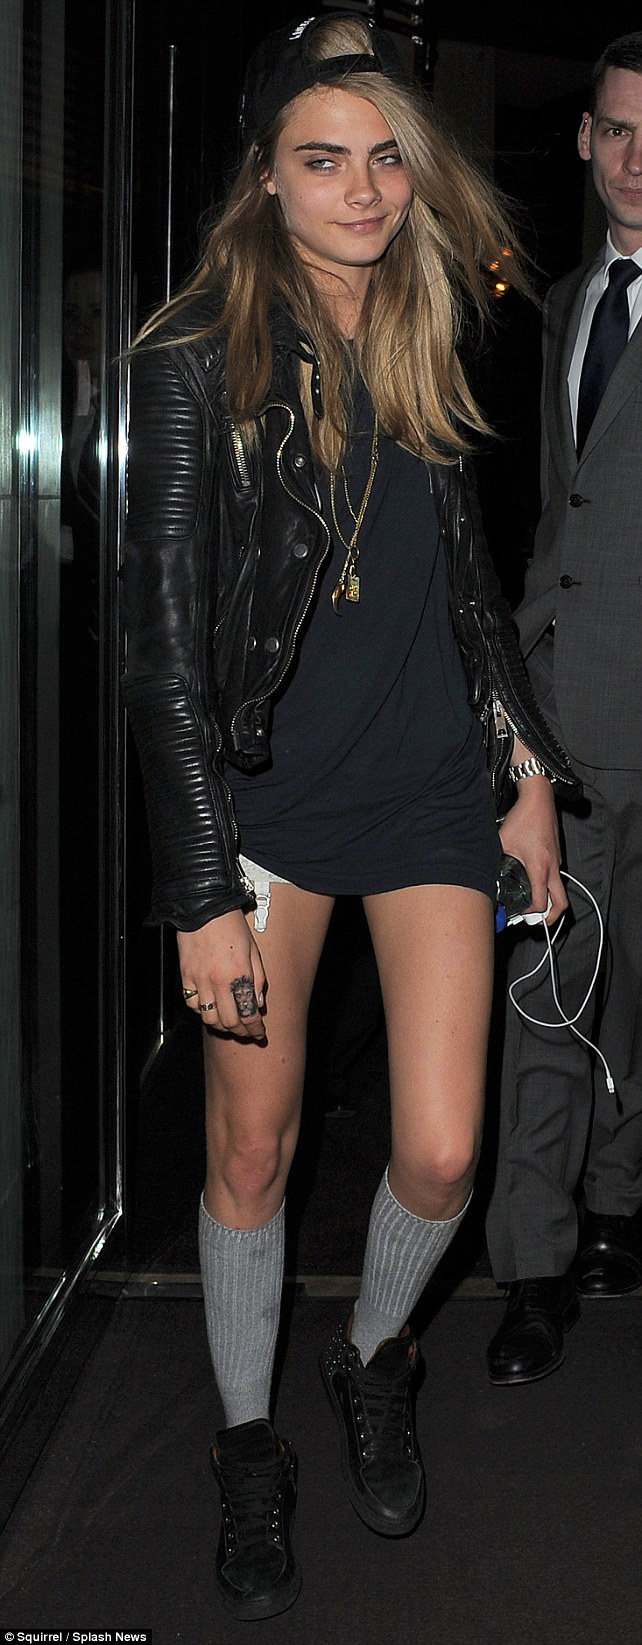 After party: Cara spent an hour in Rihanna's hotel room following the singer's gig at Twickenham